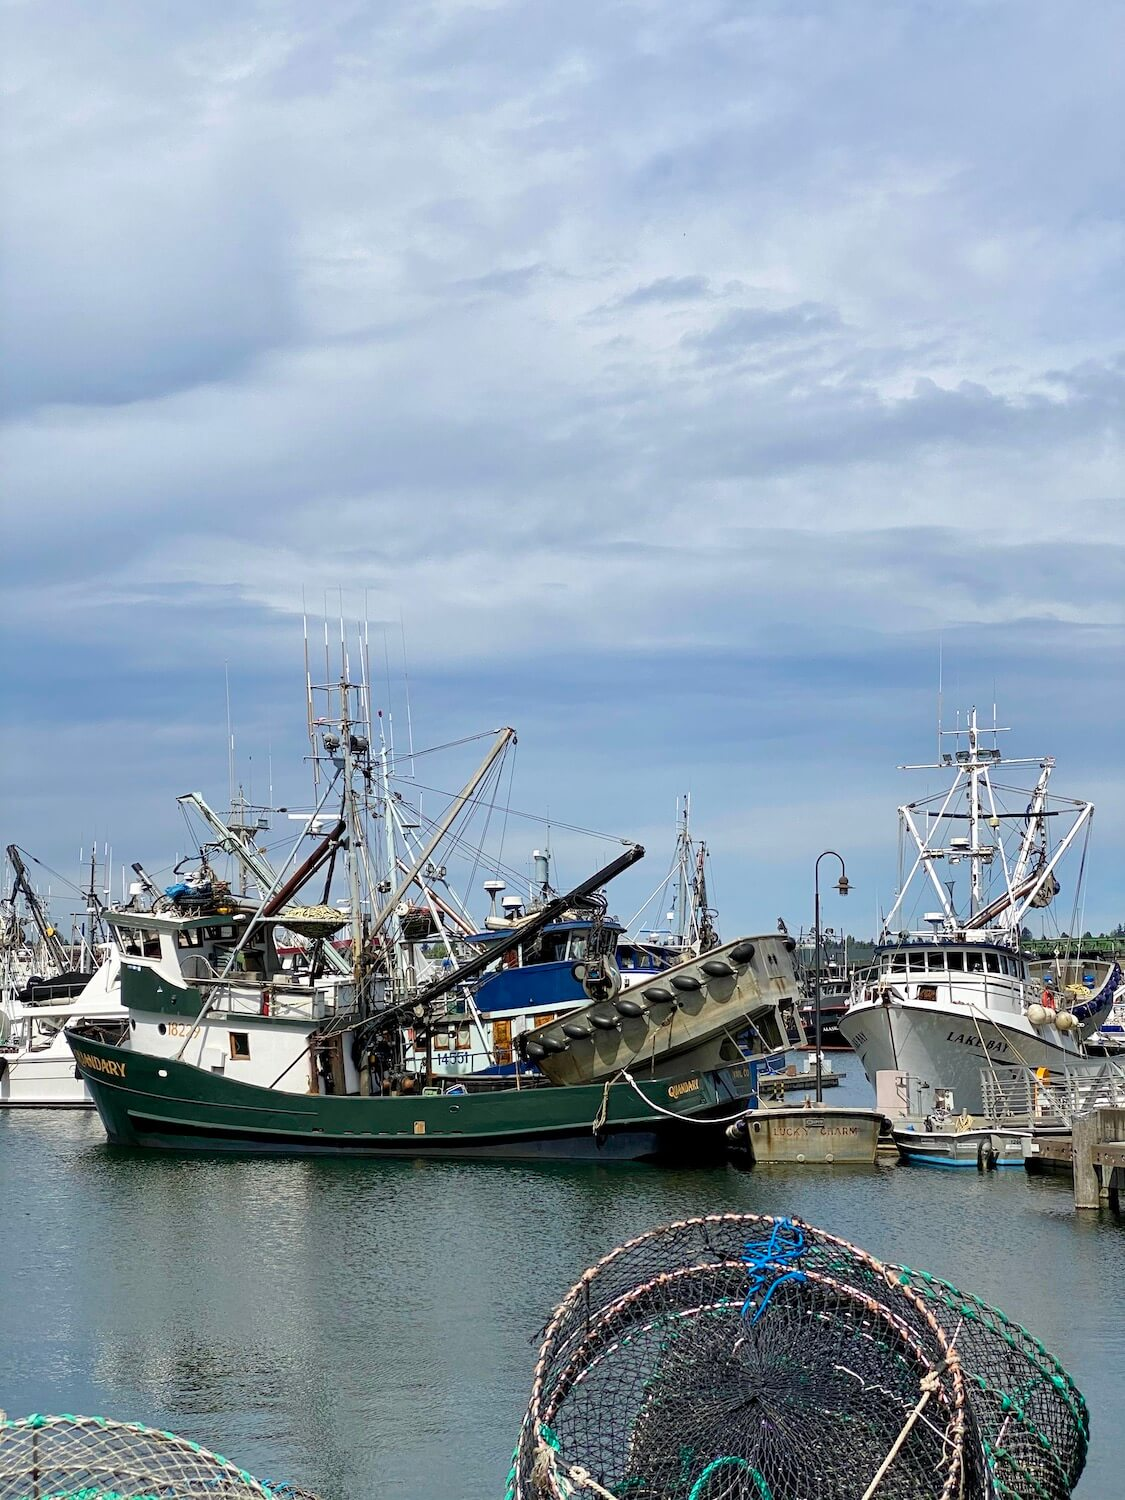 A variety of fishing vessels come together at the marina, adorned with fishing nets and other gear.